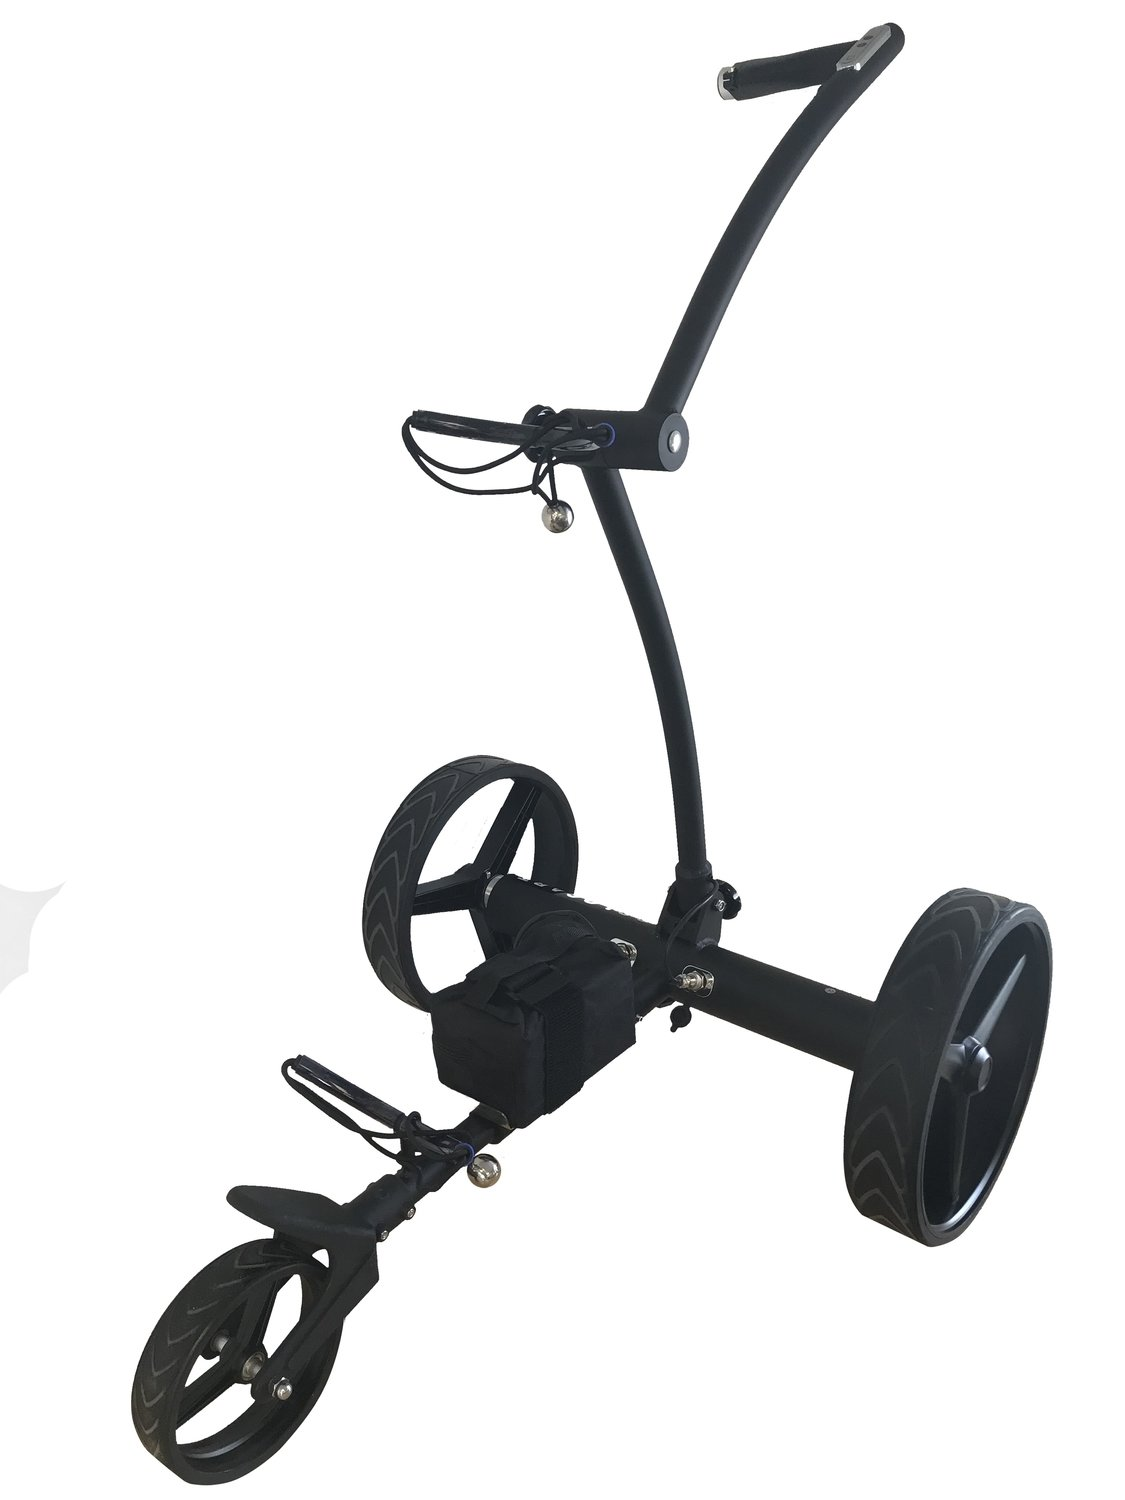 Panther electric Golf Trolley Lithium 2 motors